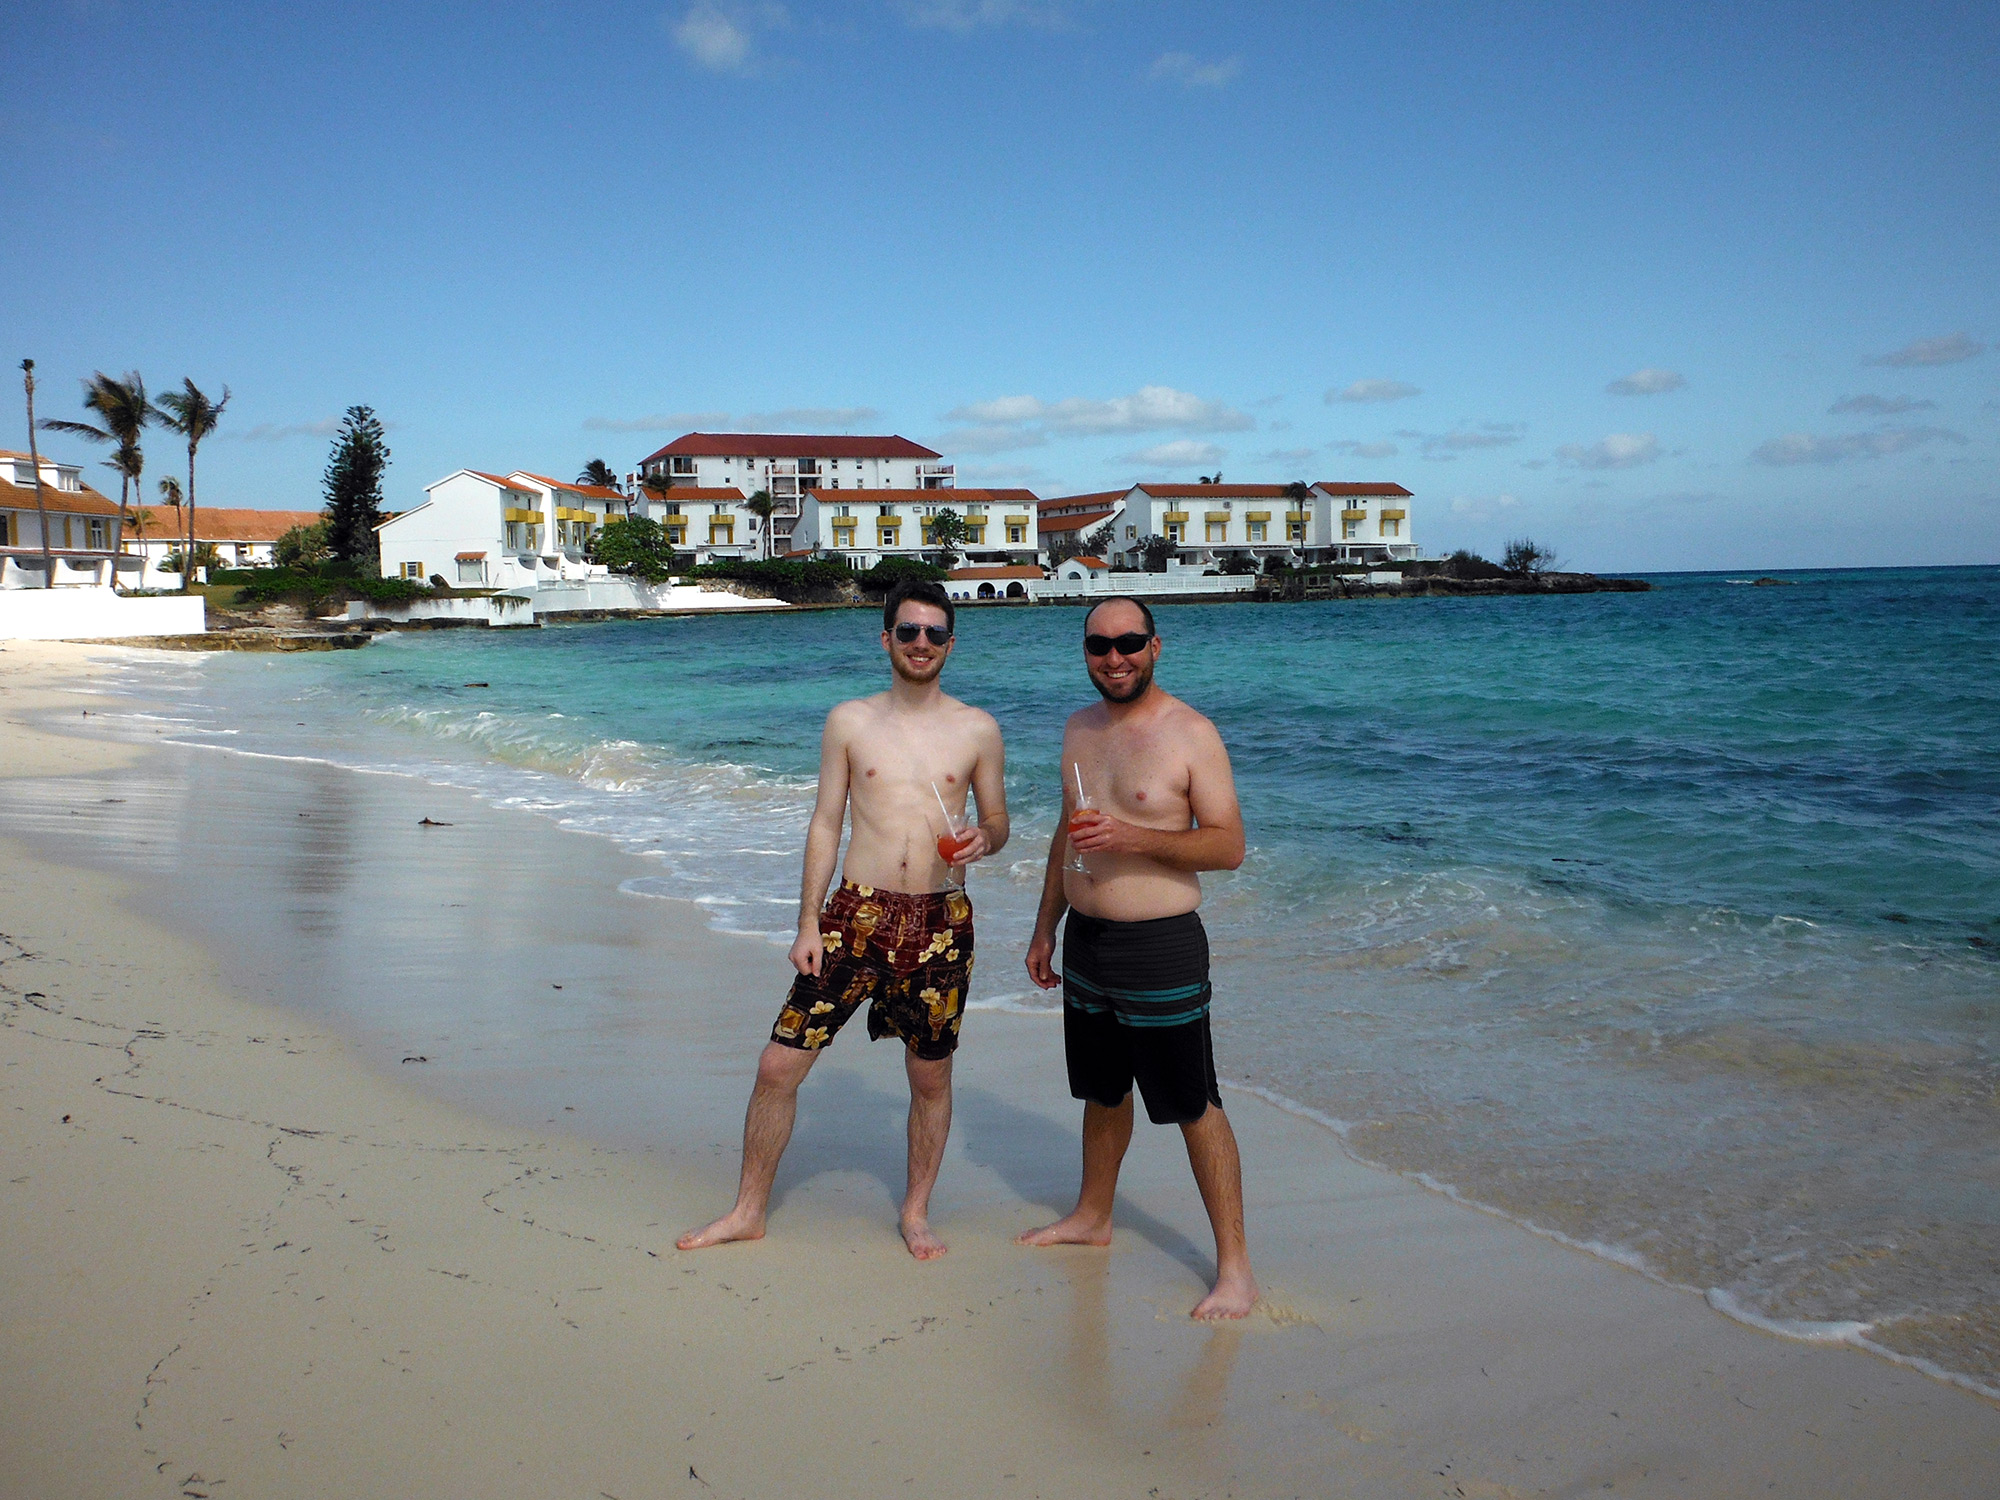 Ron Stauffer and a friend holding drinks, smiling, and standing on a beach in The Bahamas